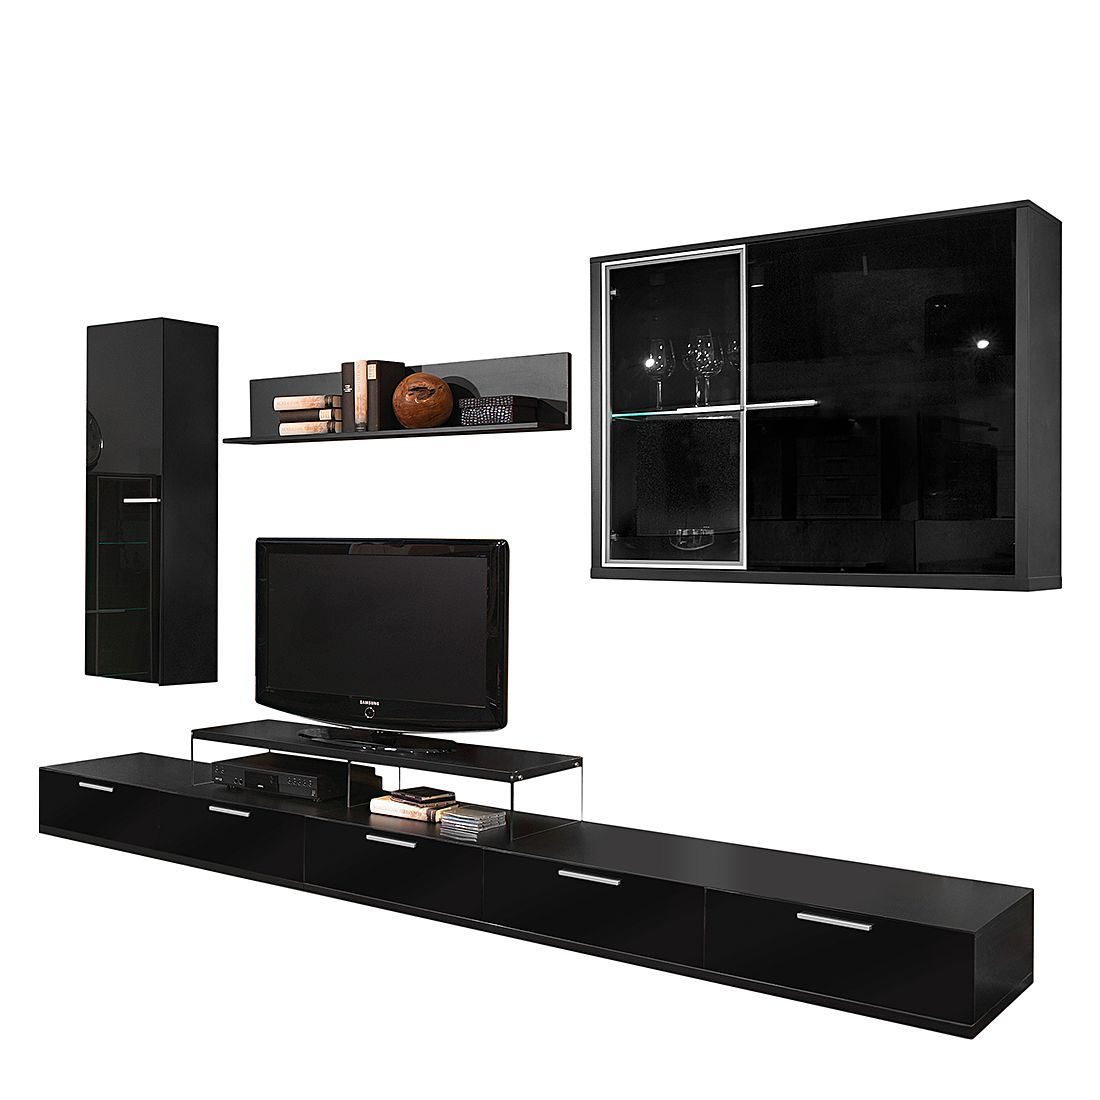 wohnwand game 6 teilig schwarz hochglanz. Black Bedroom Furniture Sets. Home Design Ideas